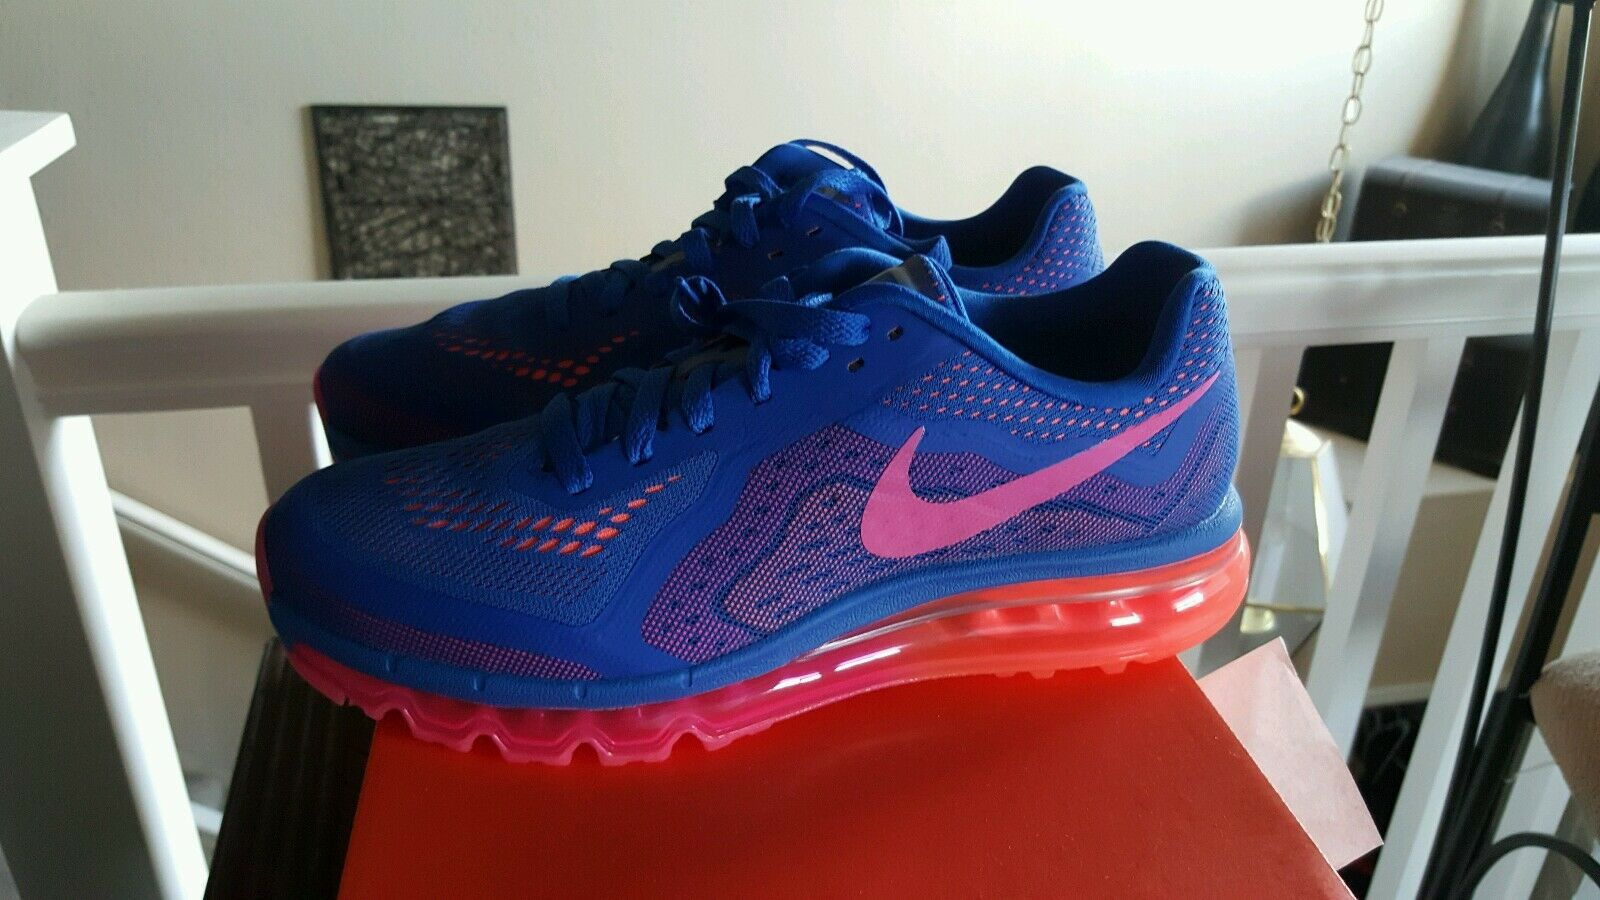 NIKE WOMEN'S AIR MAX 2018 RUNNING SHOES SIZE 11.5 THESPOT917